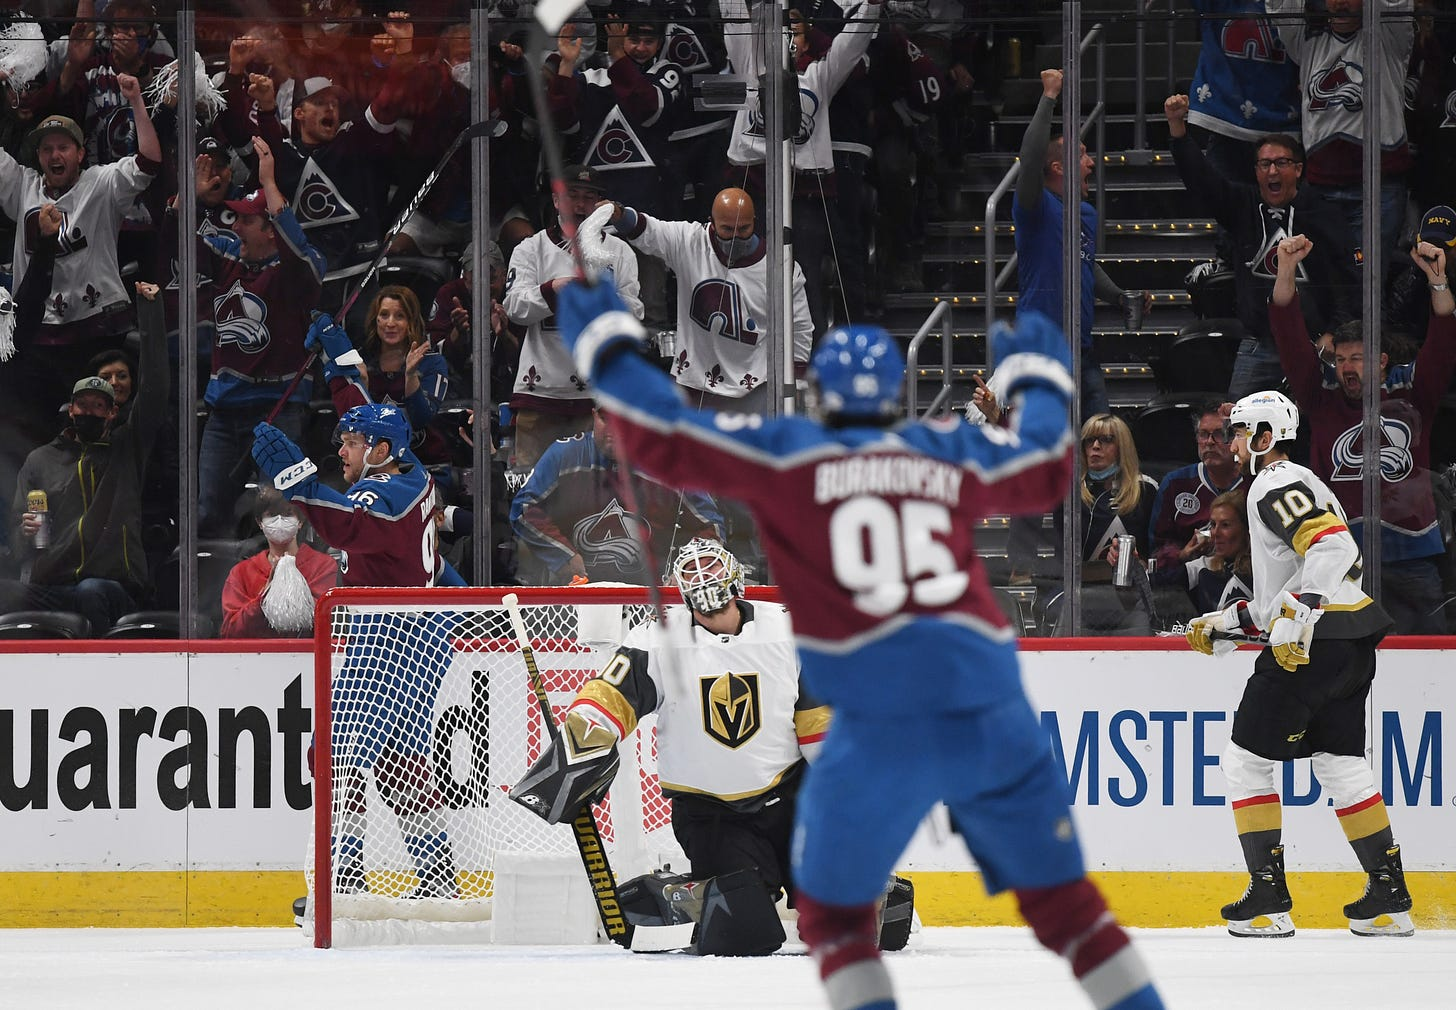 Avalanche crushes Golden Knights 7-1 in chippy Game 1 – The Denver Post